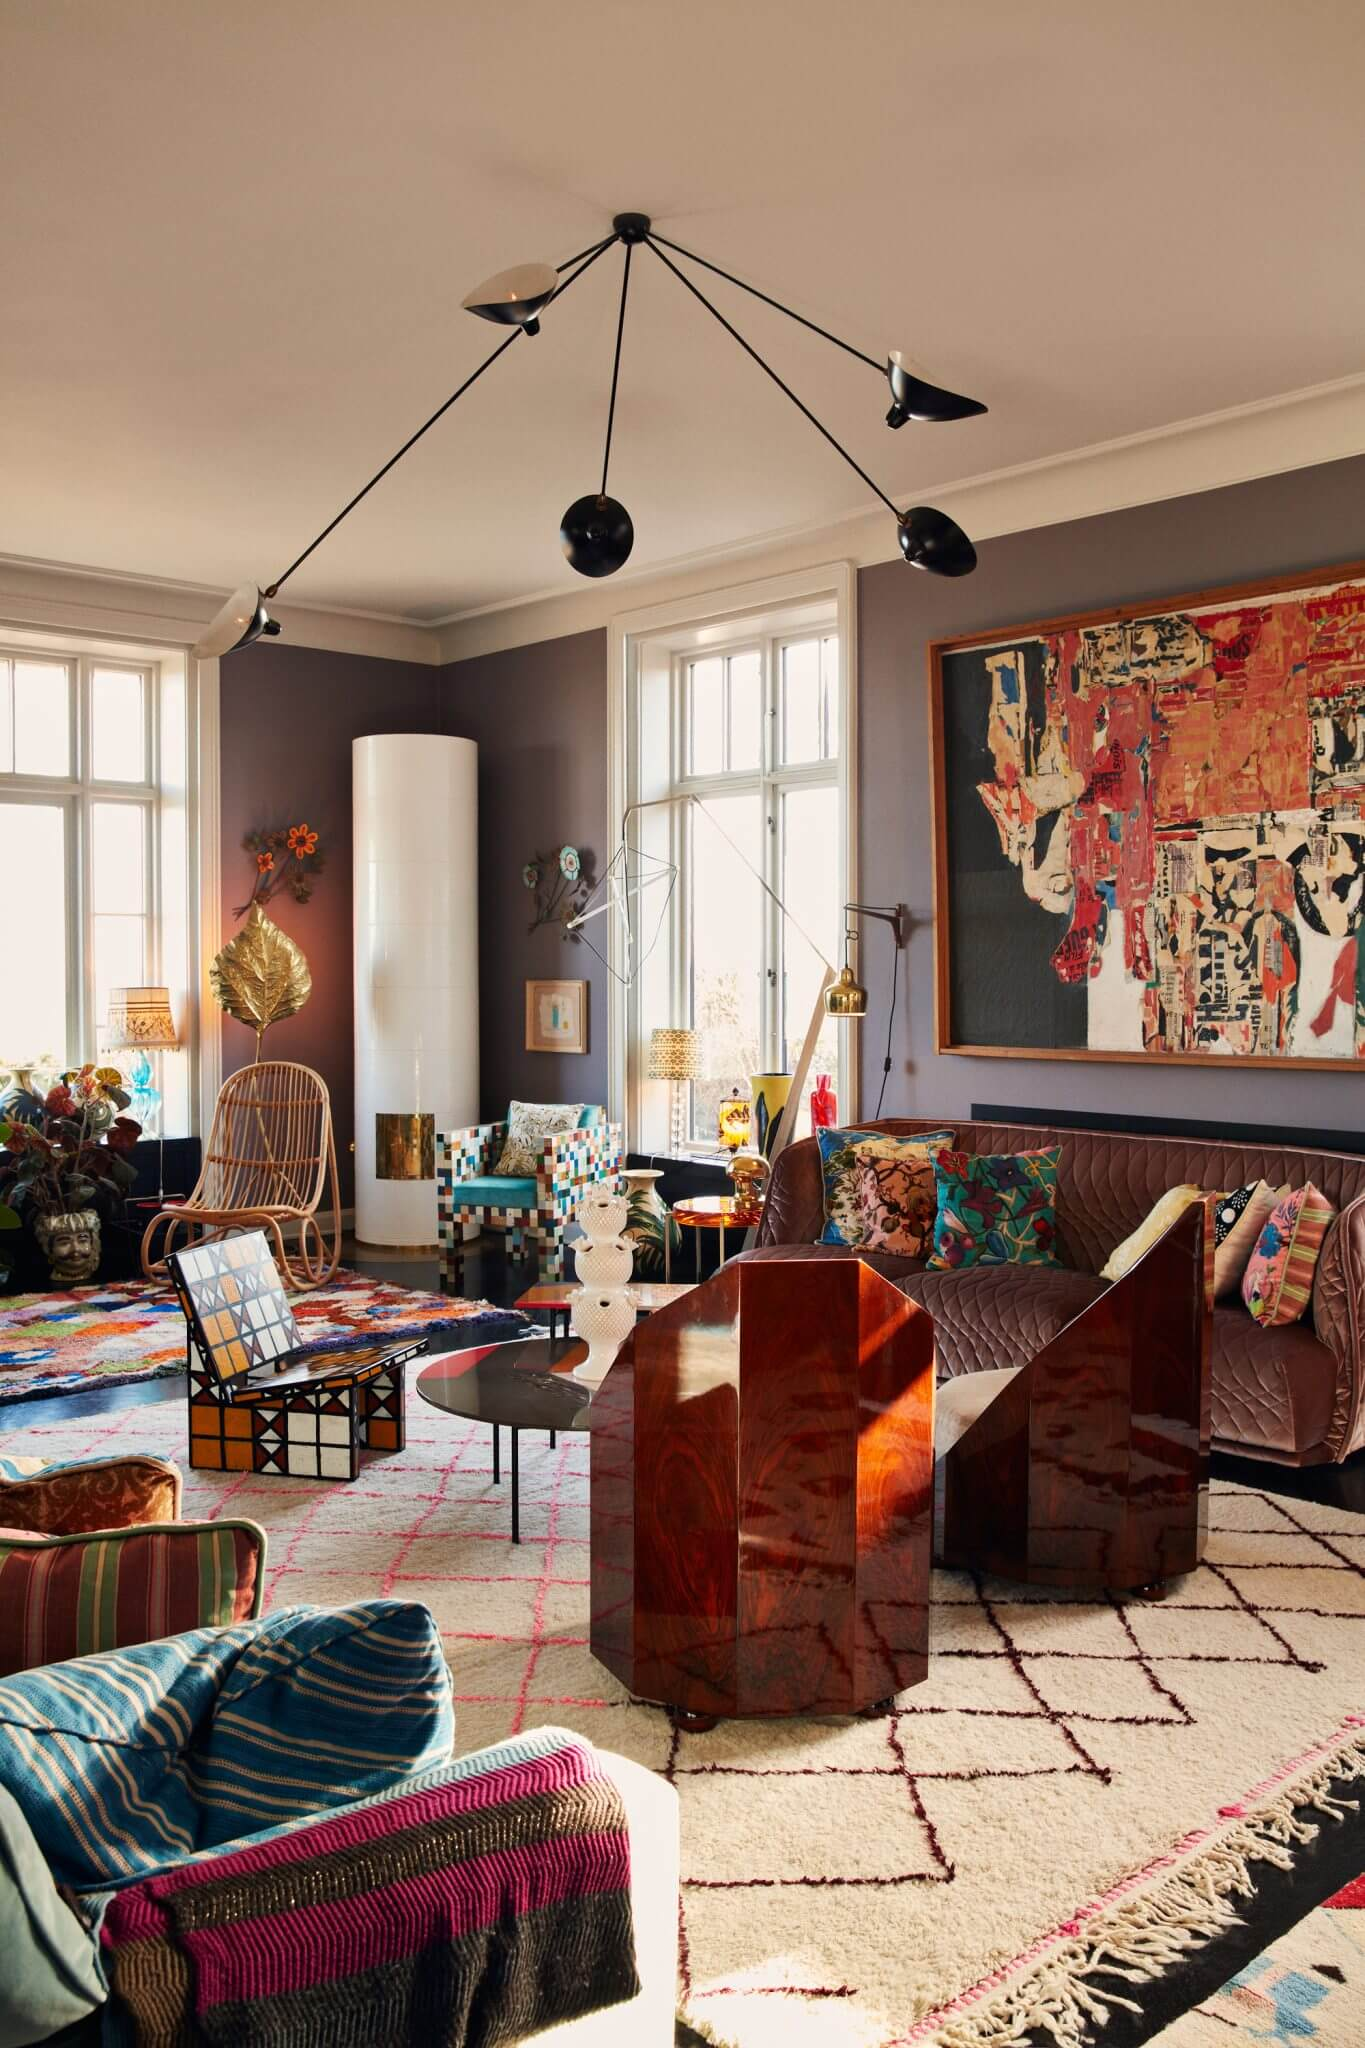 The Colorful Copenhagen Home Of An Art Collector